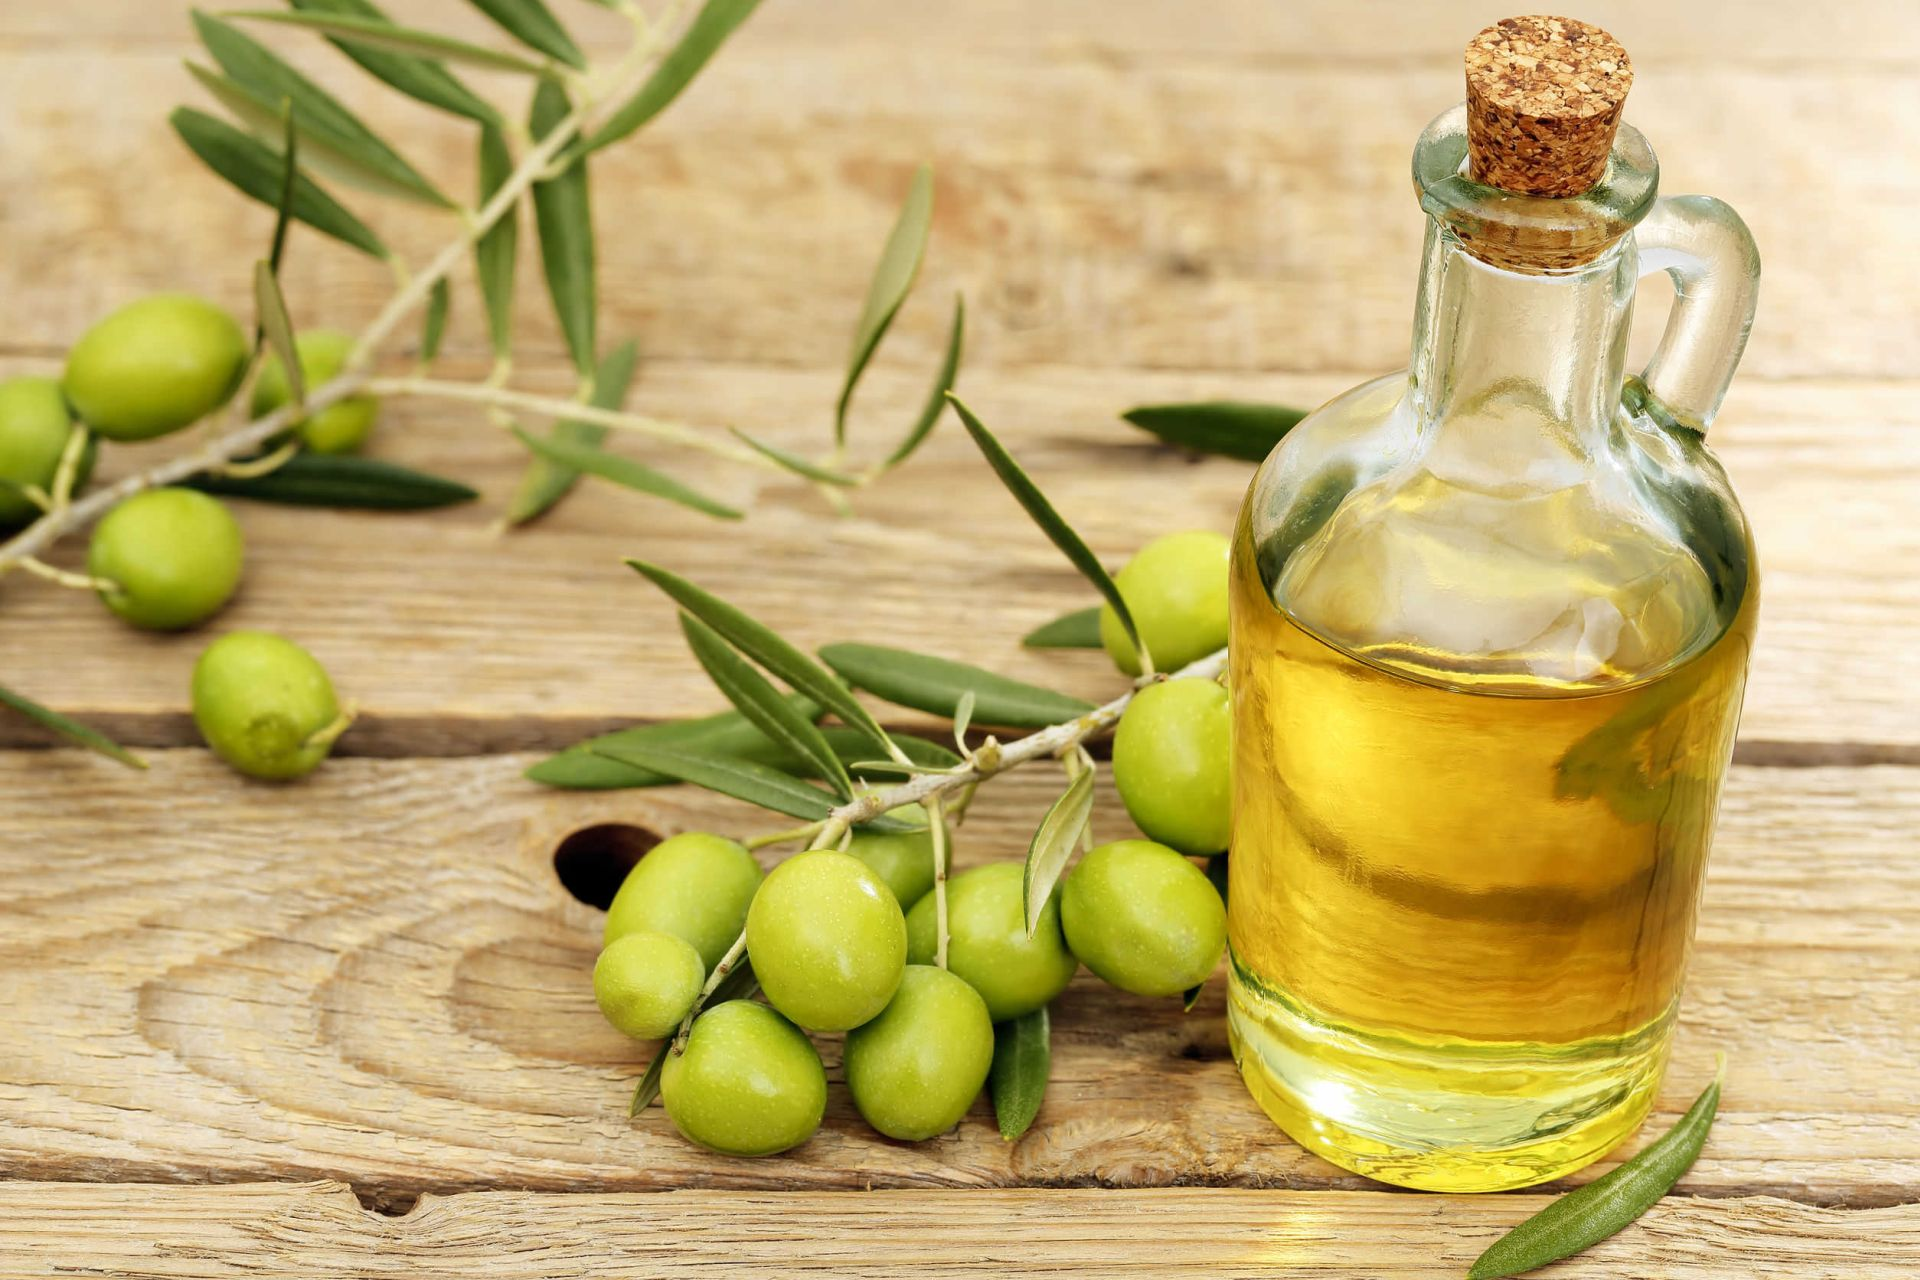 olive oil, olive oil health benefits, olive oil skin benefits, extra virgin olive oil, extra virgin olive oil health benefits, jaitun ke fayde, jaitun ka tel, olive oil benefits and side effects,nutritional benefits olive oil ,health facts ,olive oil health benefits in hindi,olive oil ke fayde,